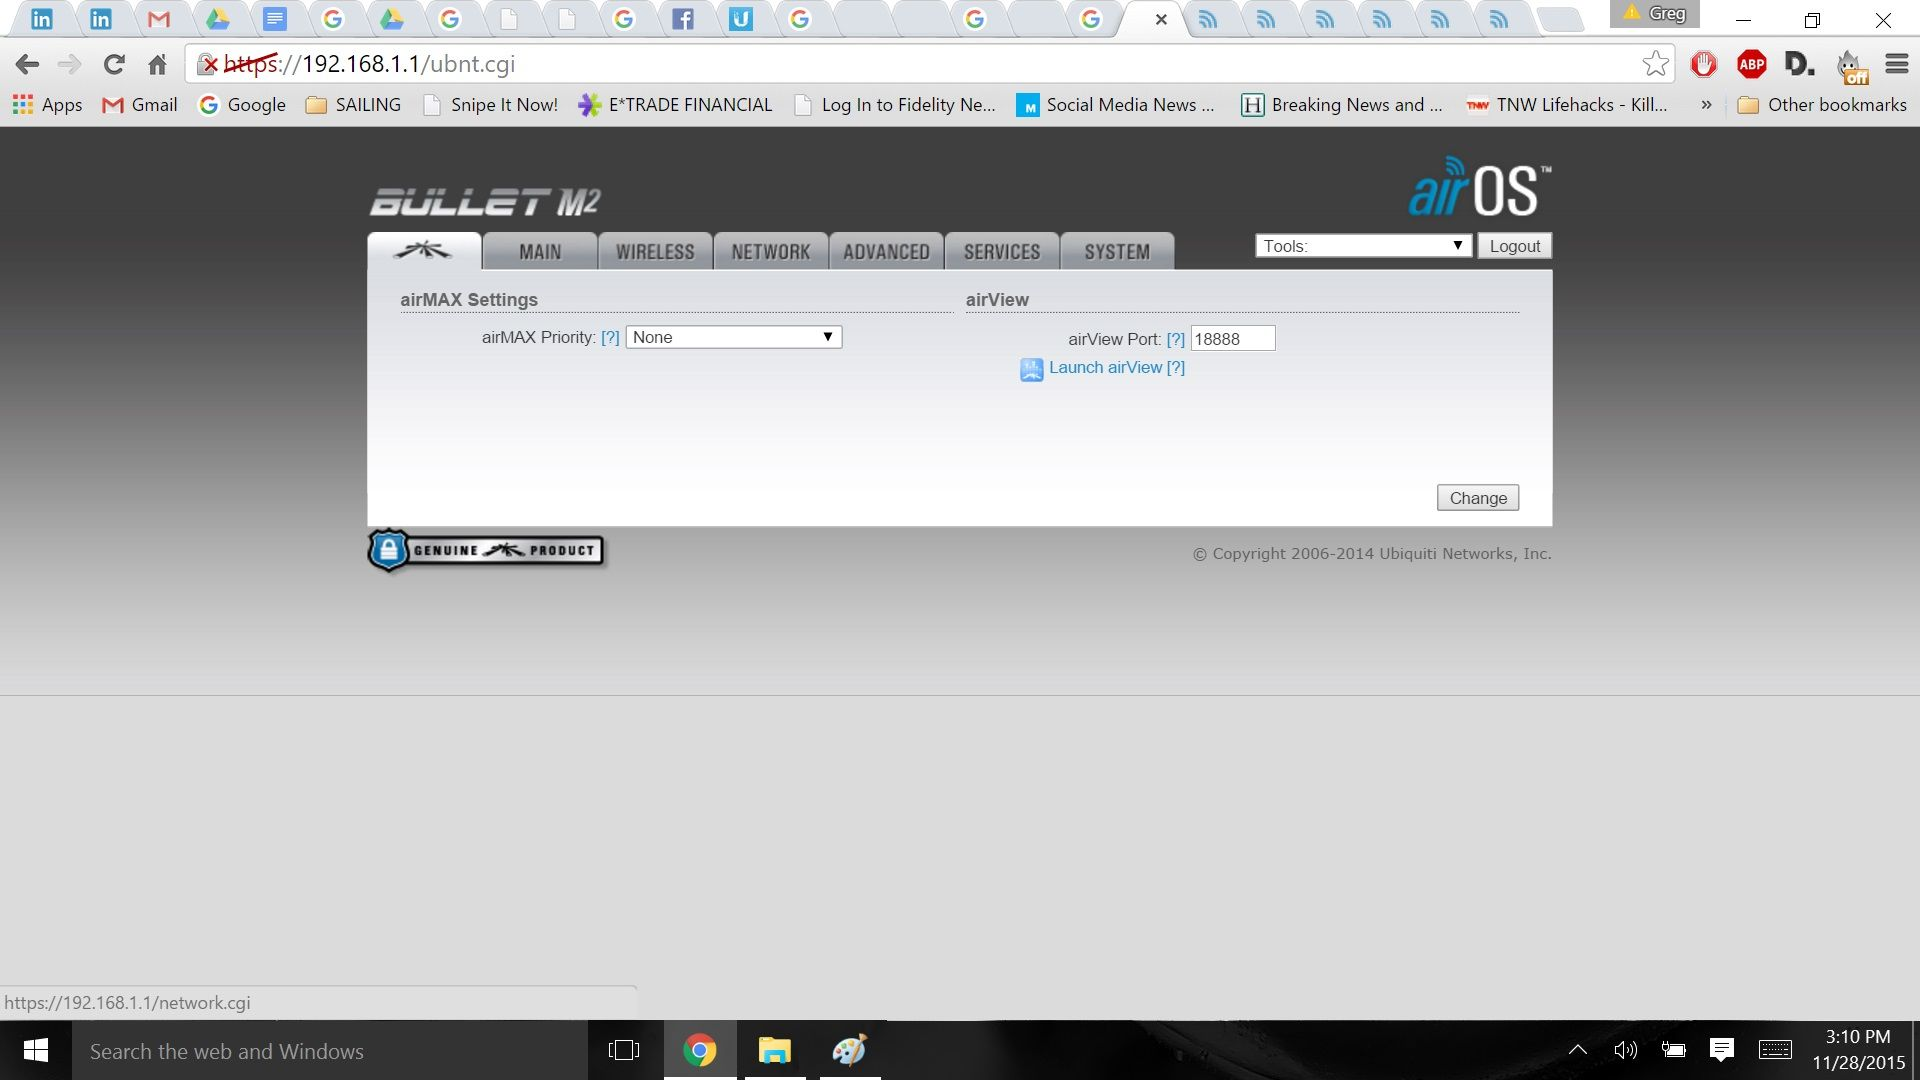 Bullet M2HP is set up properly but cannot access websites   Ubiquiti